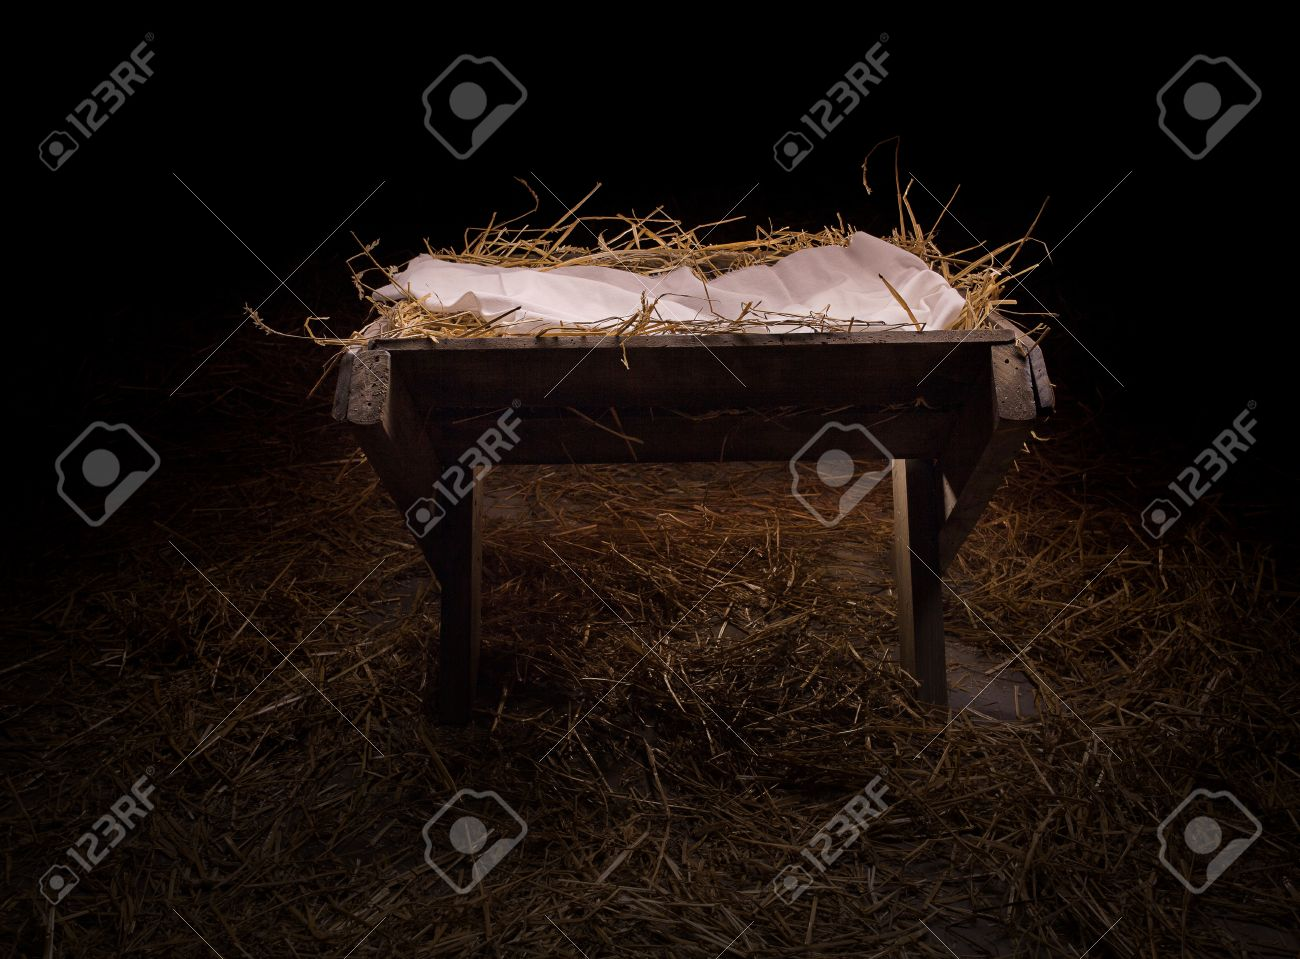 Empty manger in the straw at night. - 47403846